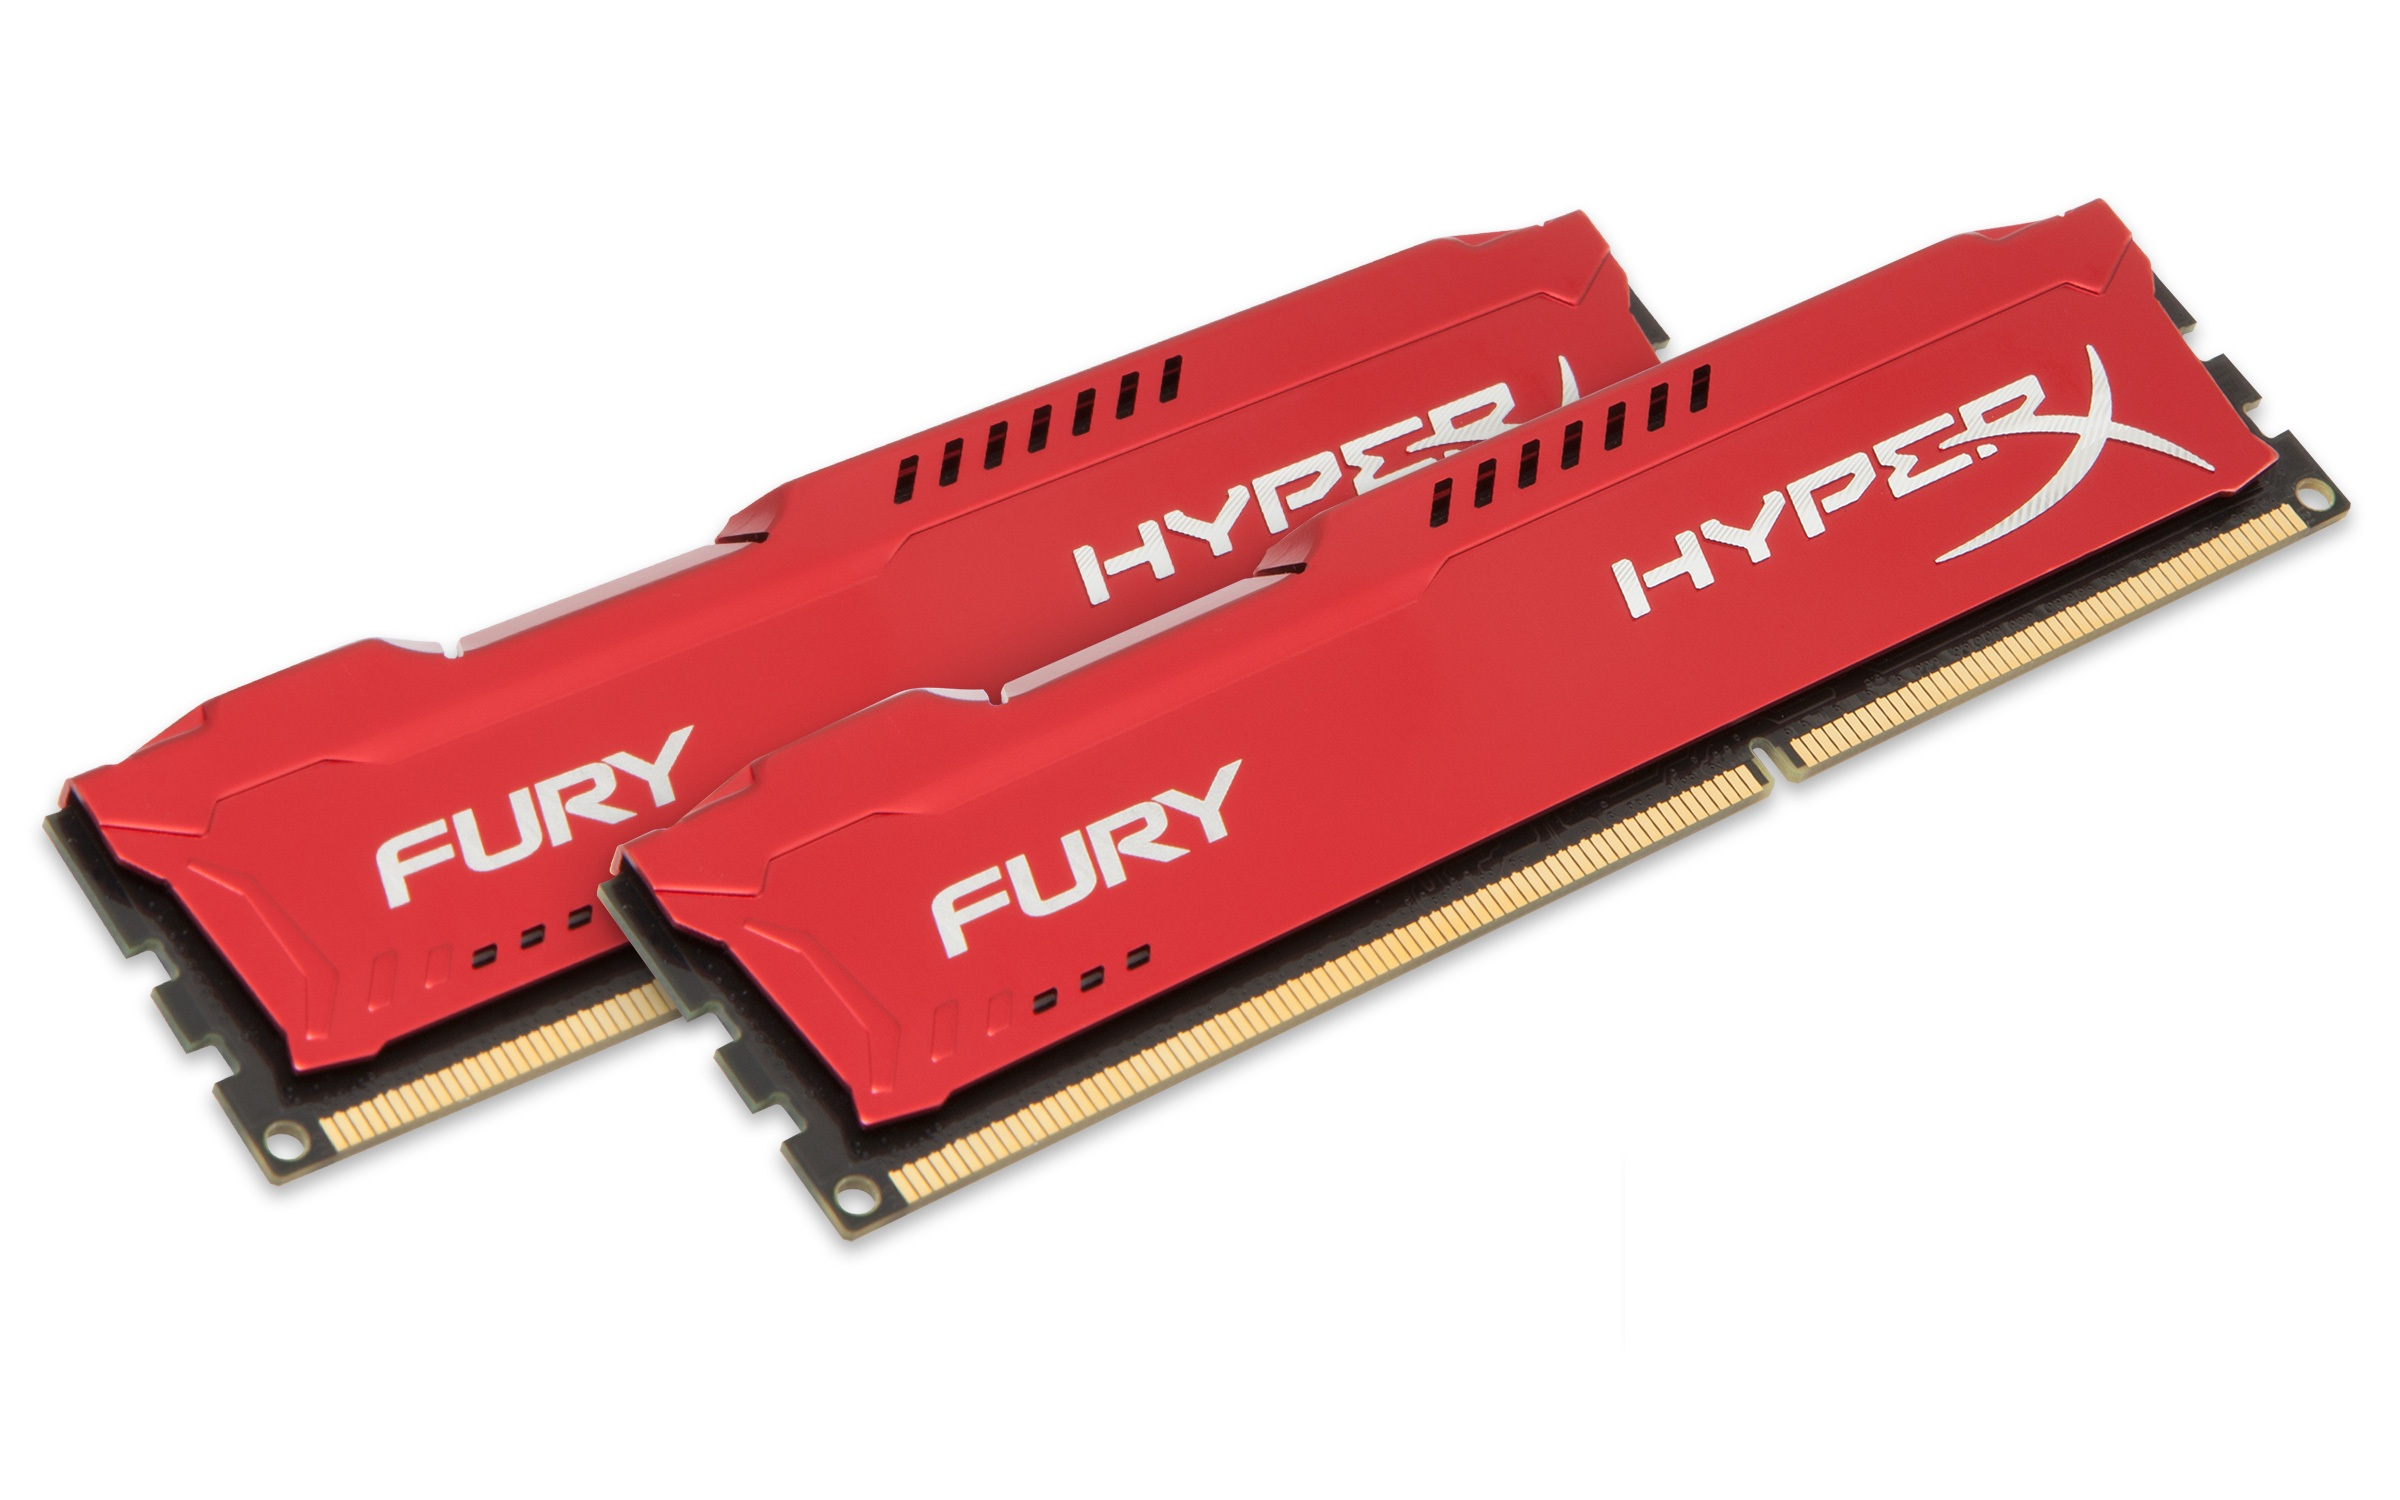 price of 16GB 1600MHz DDR3 CL10 DIMM (Kit of 2) HyperX FURY Red on ShopHub | ecommerce, price check, start a business, sell online